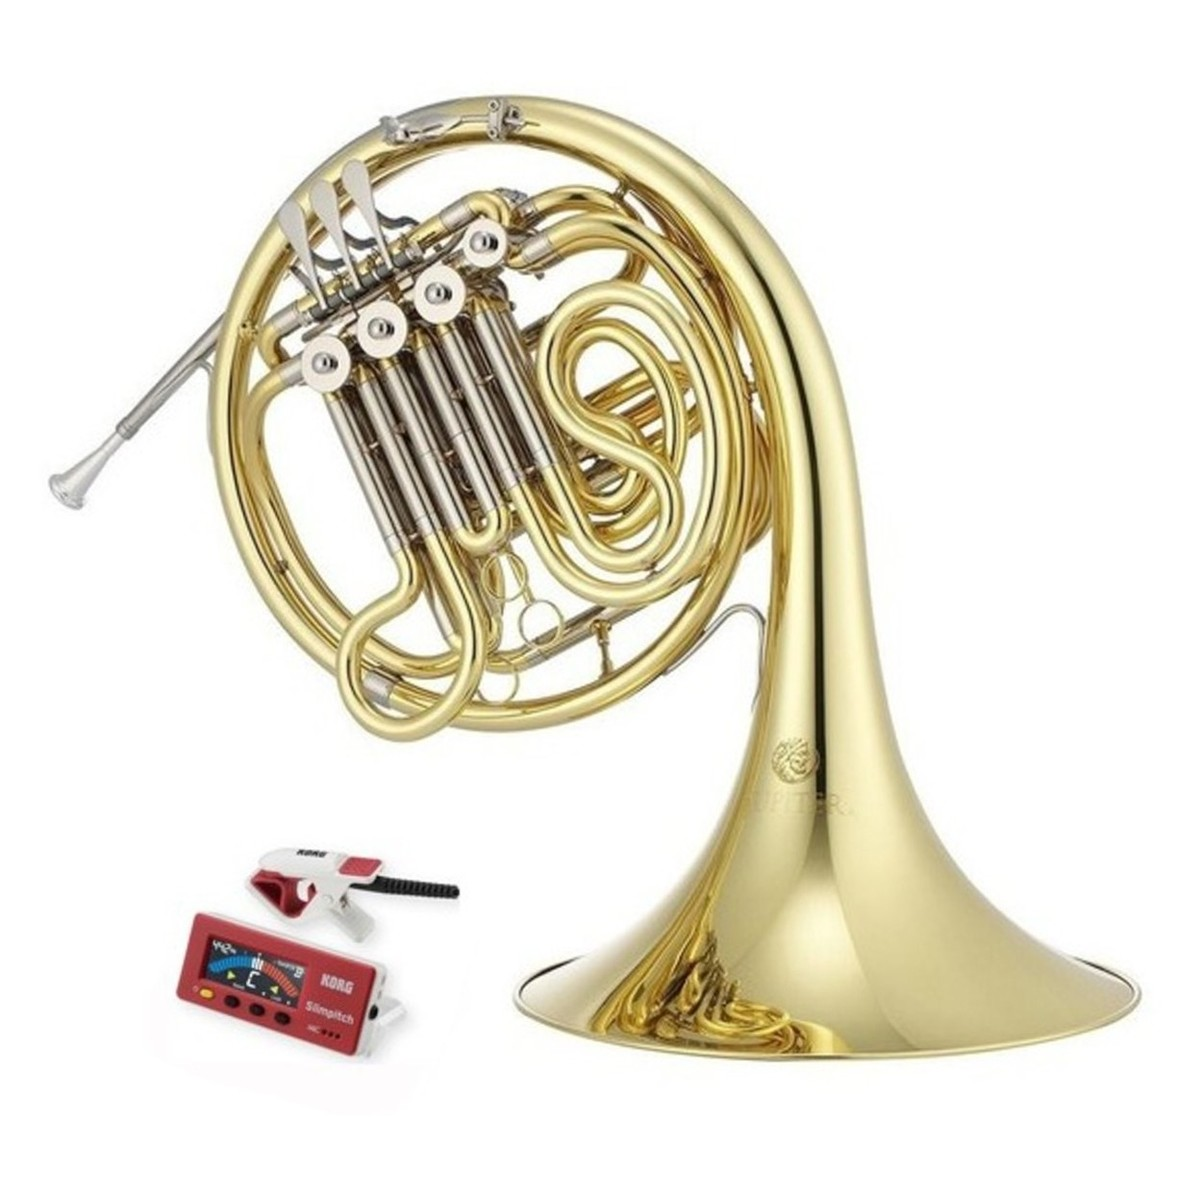 jupiter jhr 1100 performers double french horn outfit with free